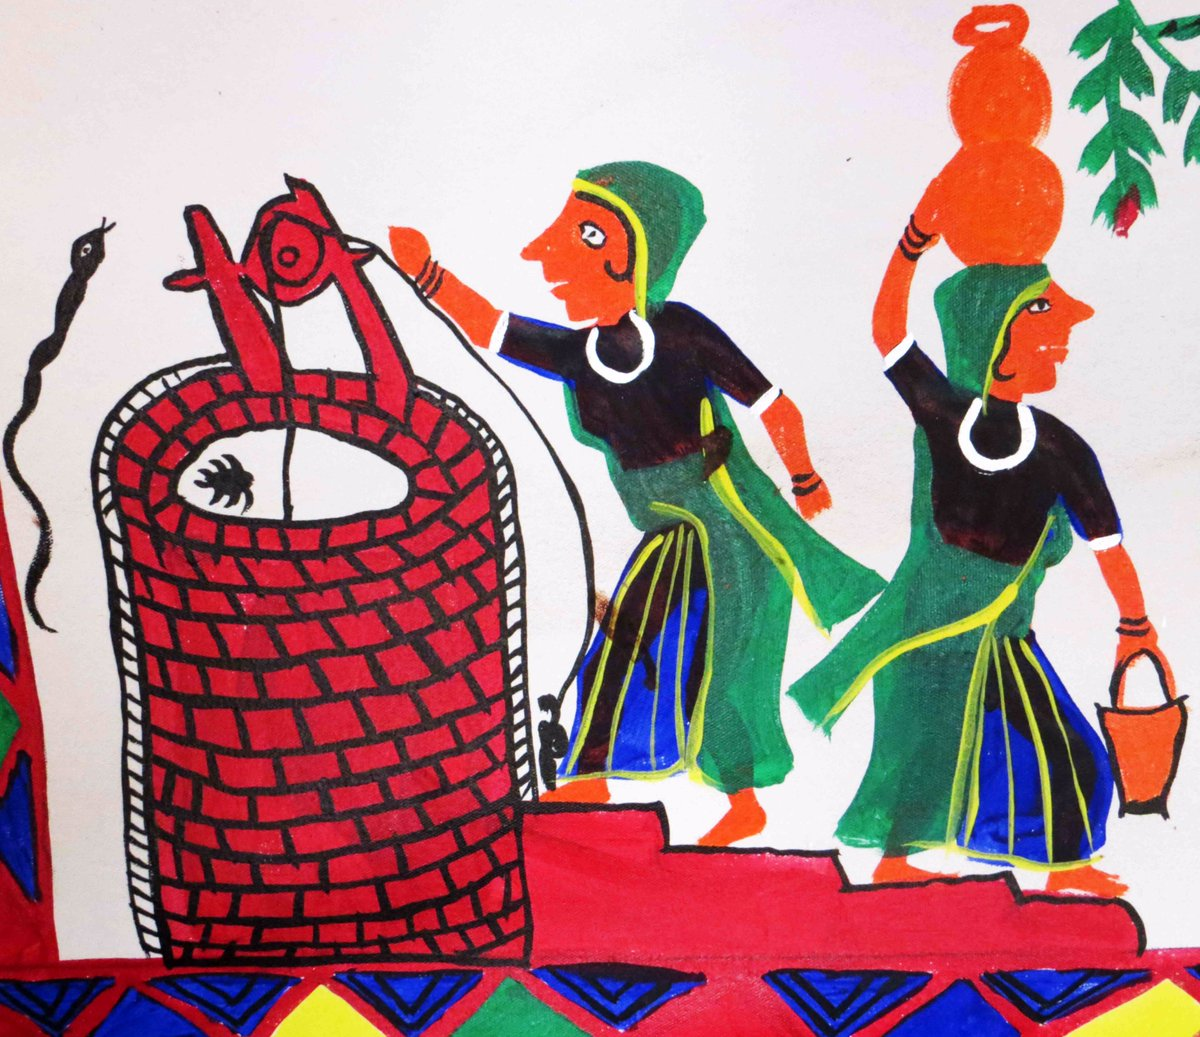 """Sahapedia on Twitter: """"The Pithora wall paintings of the #Rathva #Adivasis  of #Gujarat are a kaleidoscope of colour. https://t.co/FgQgw0g4ct #Pithora # Painting… https://t.co/Vwc3LgX8g8"""""""